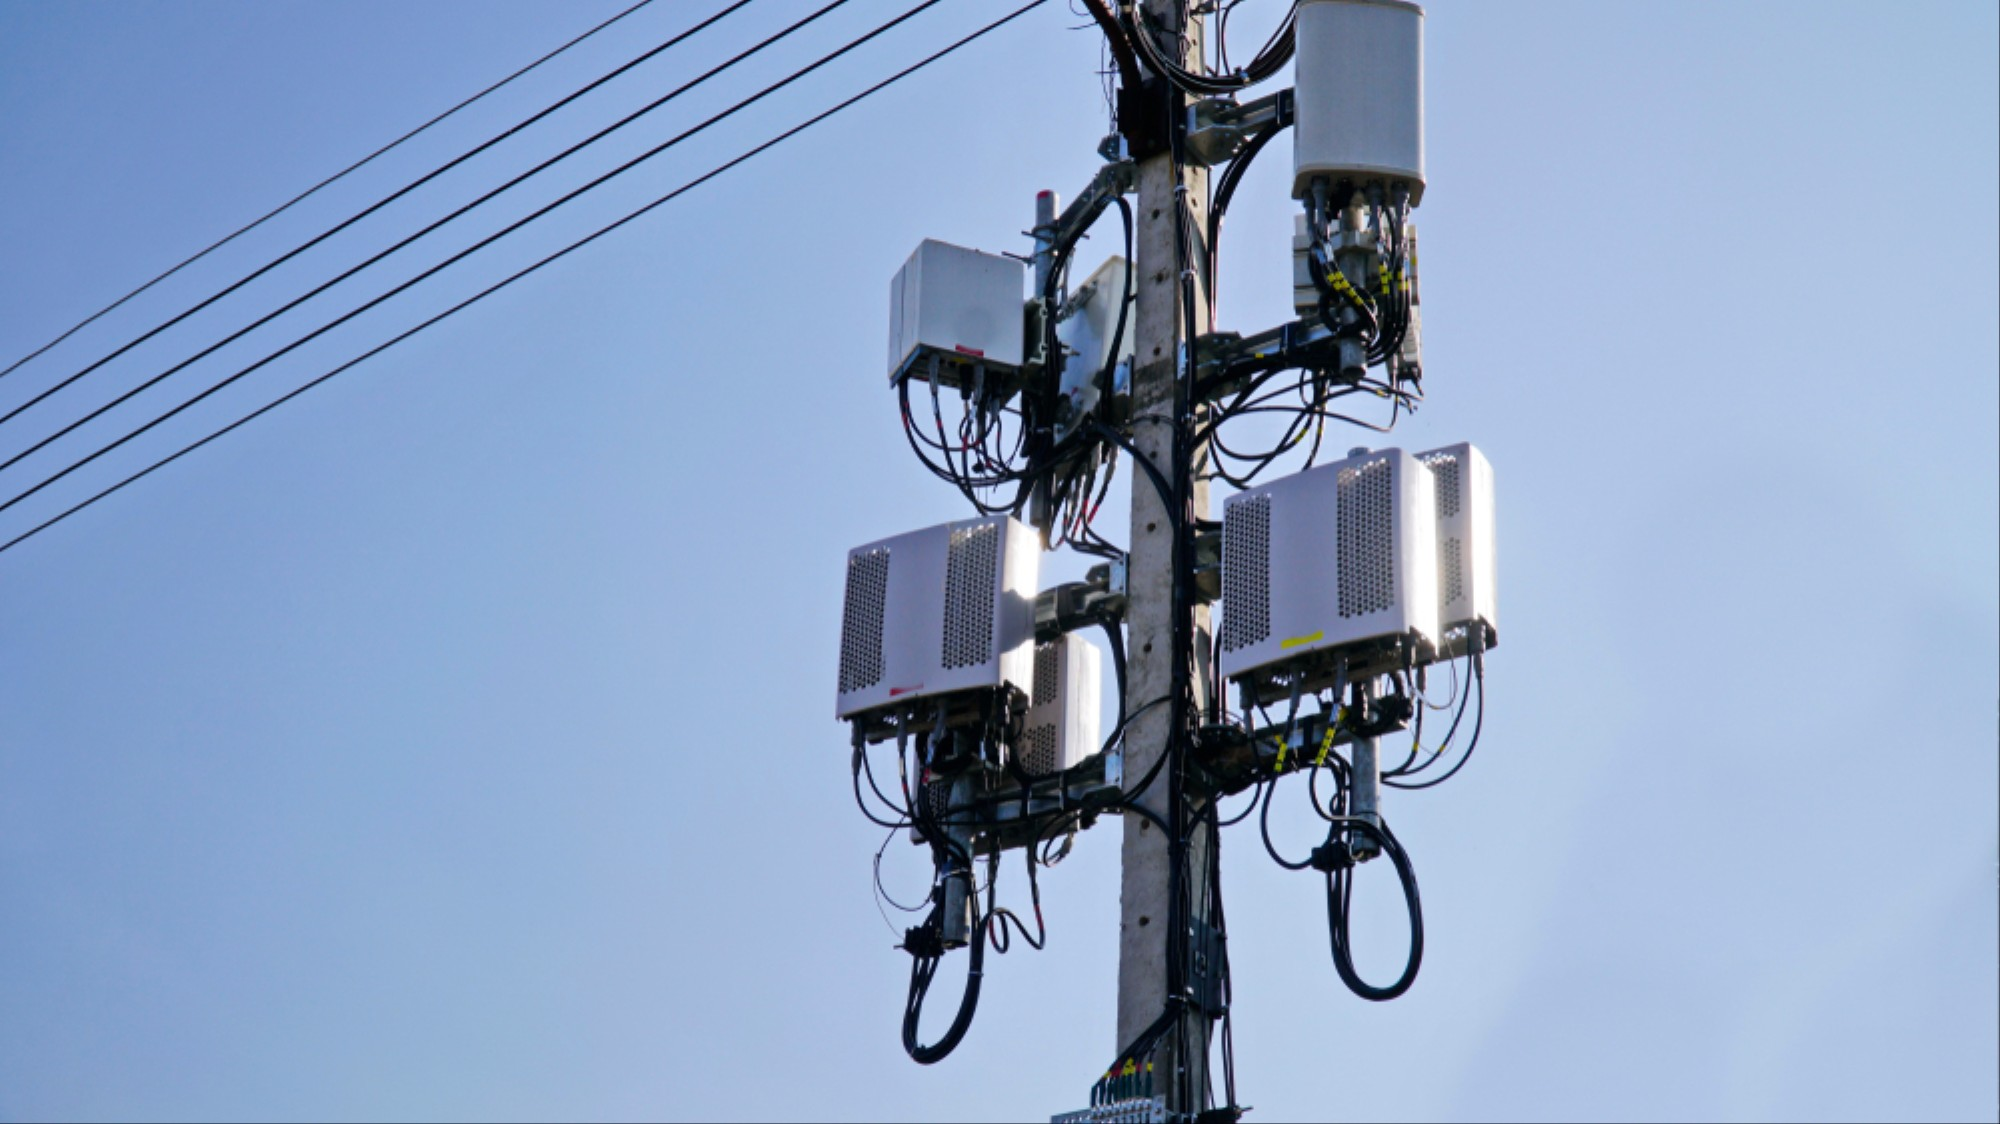 5G Wireless Rekindles Decades-Old Fight Over Cellular Health